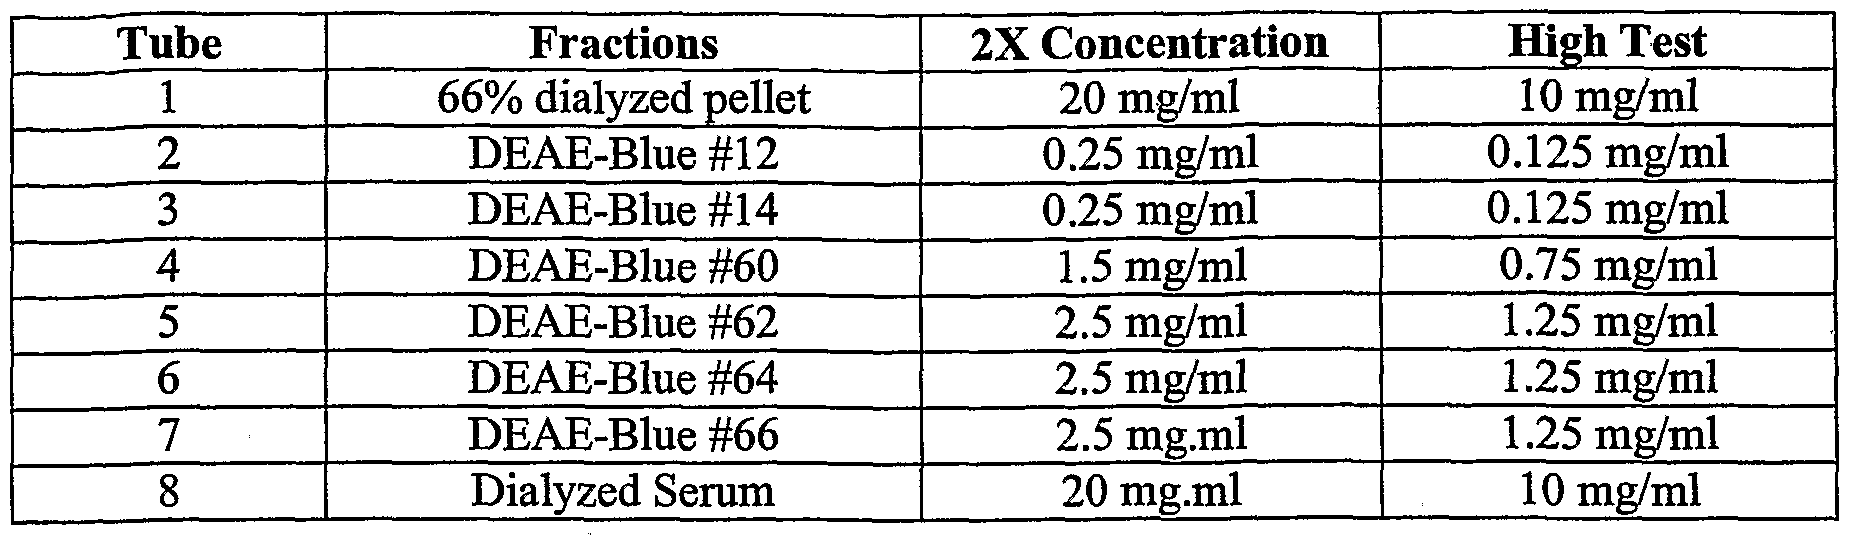 WO2006023774A2 - Plasma or serum fraction for treatment and